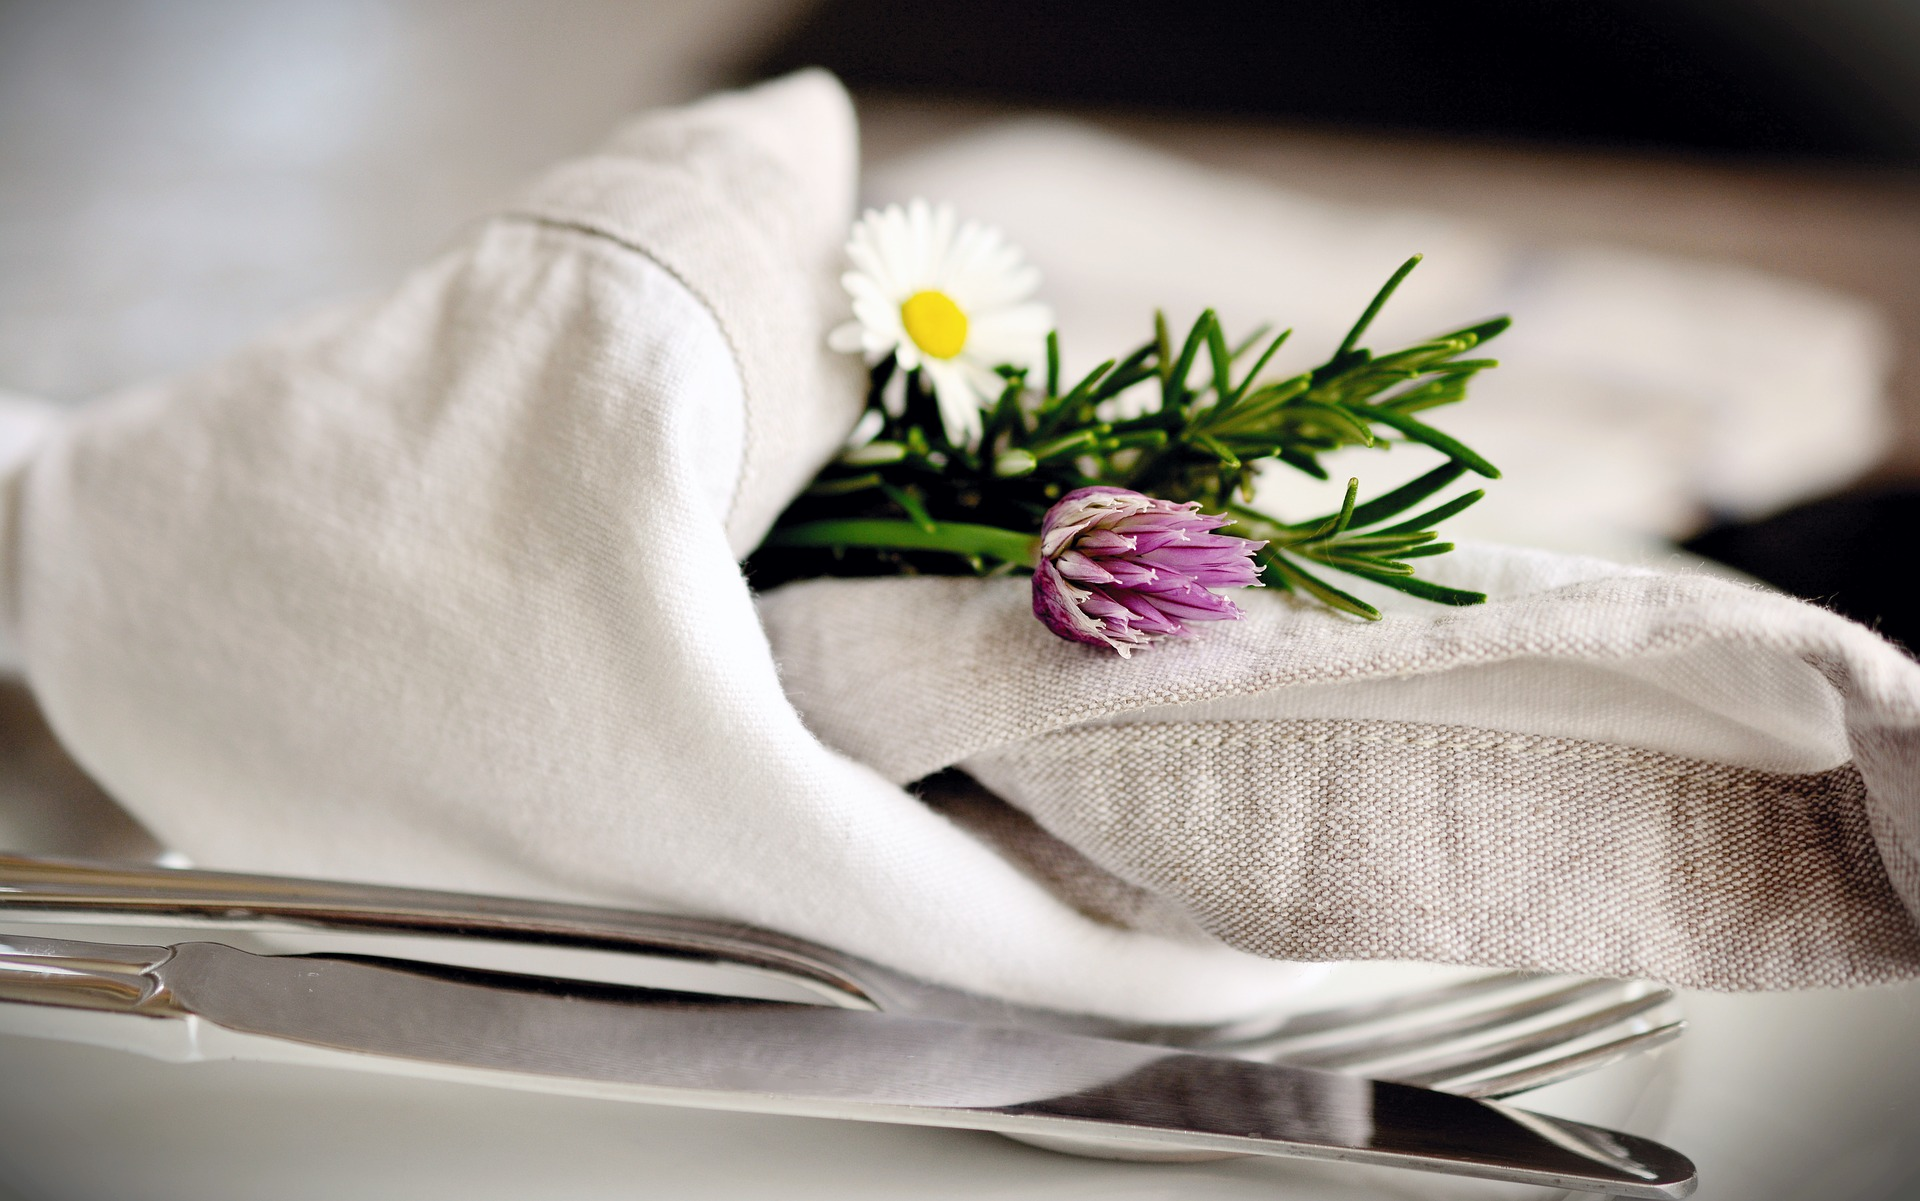 Cloth napkin and cutlery on a table.